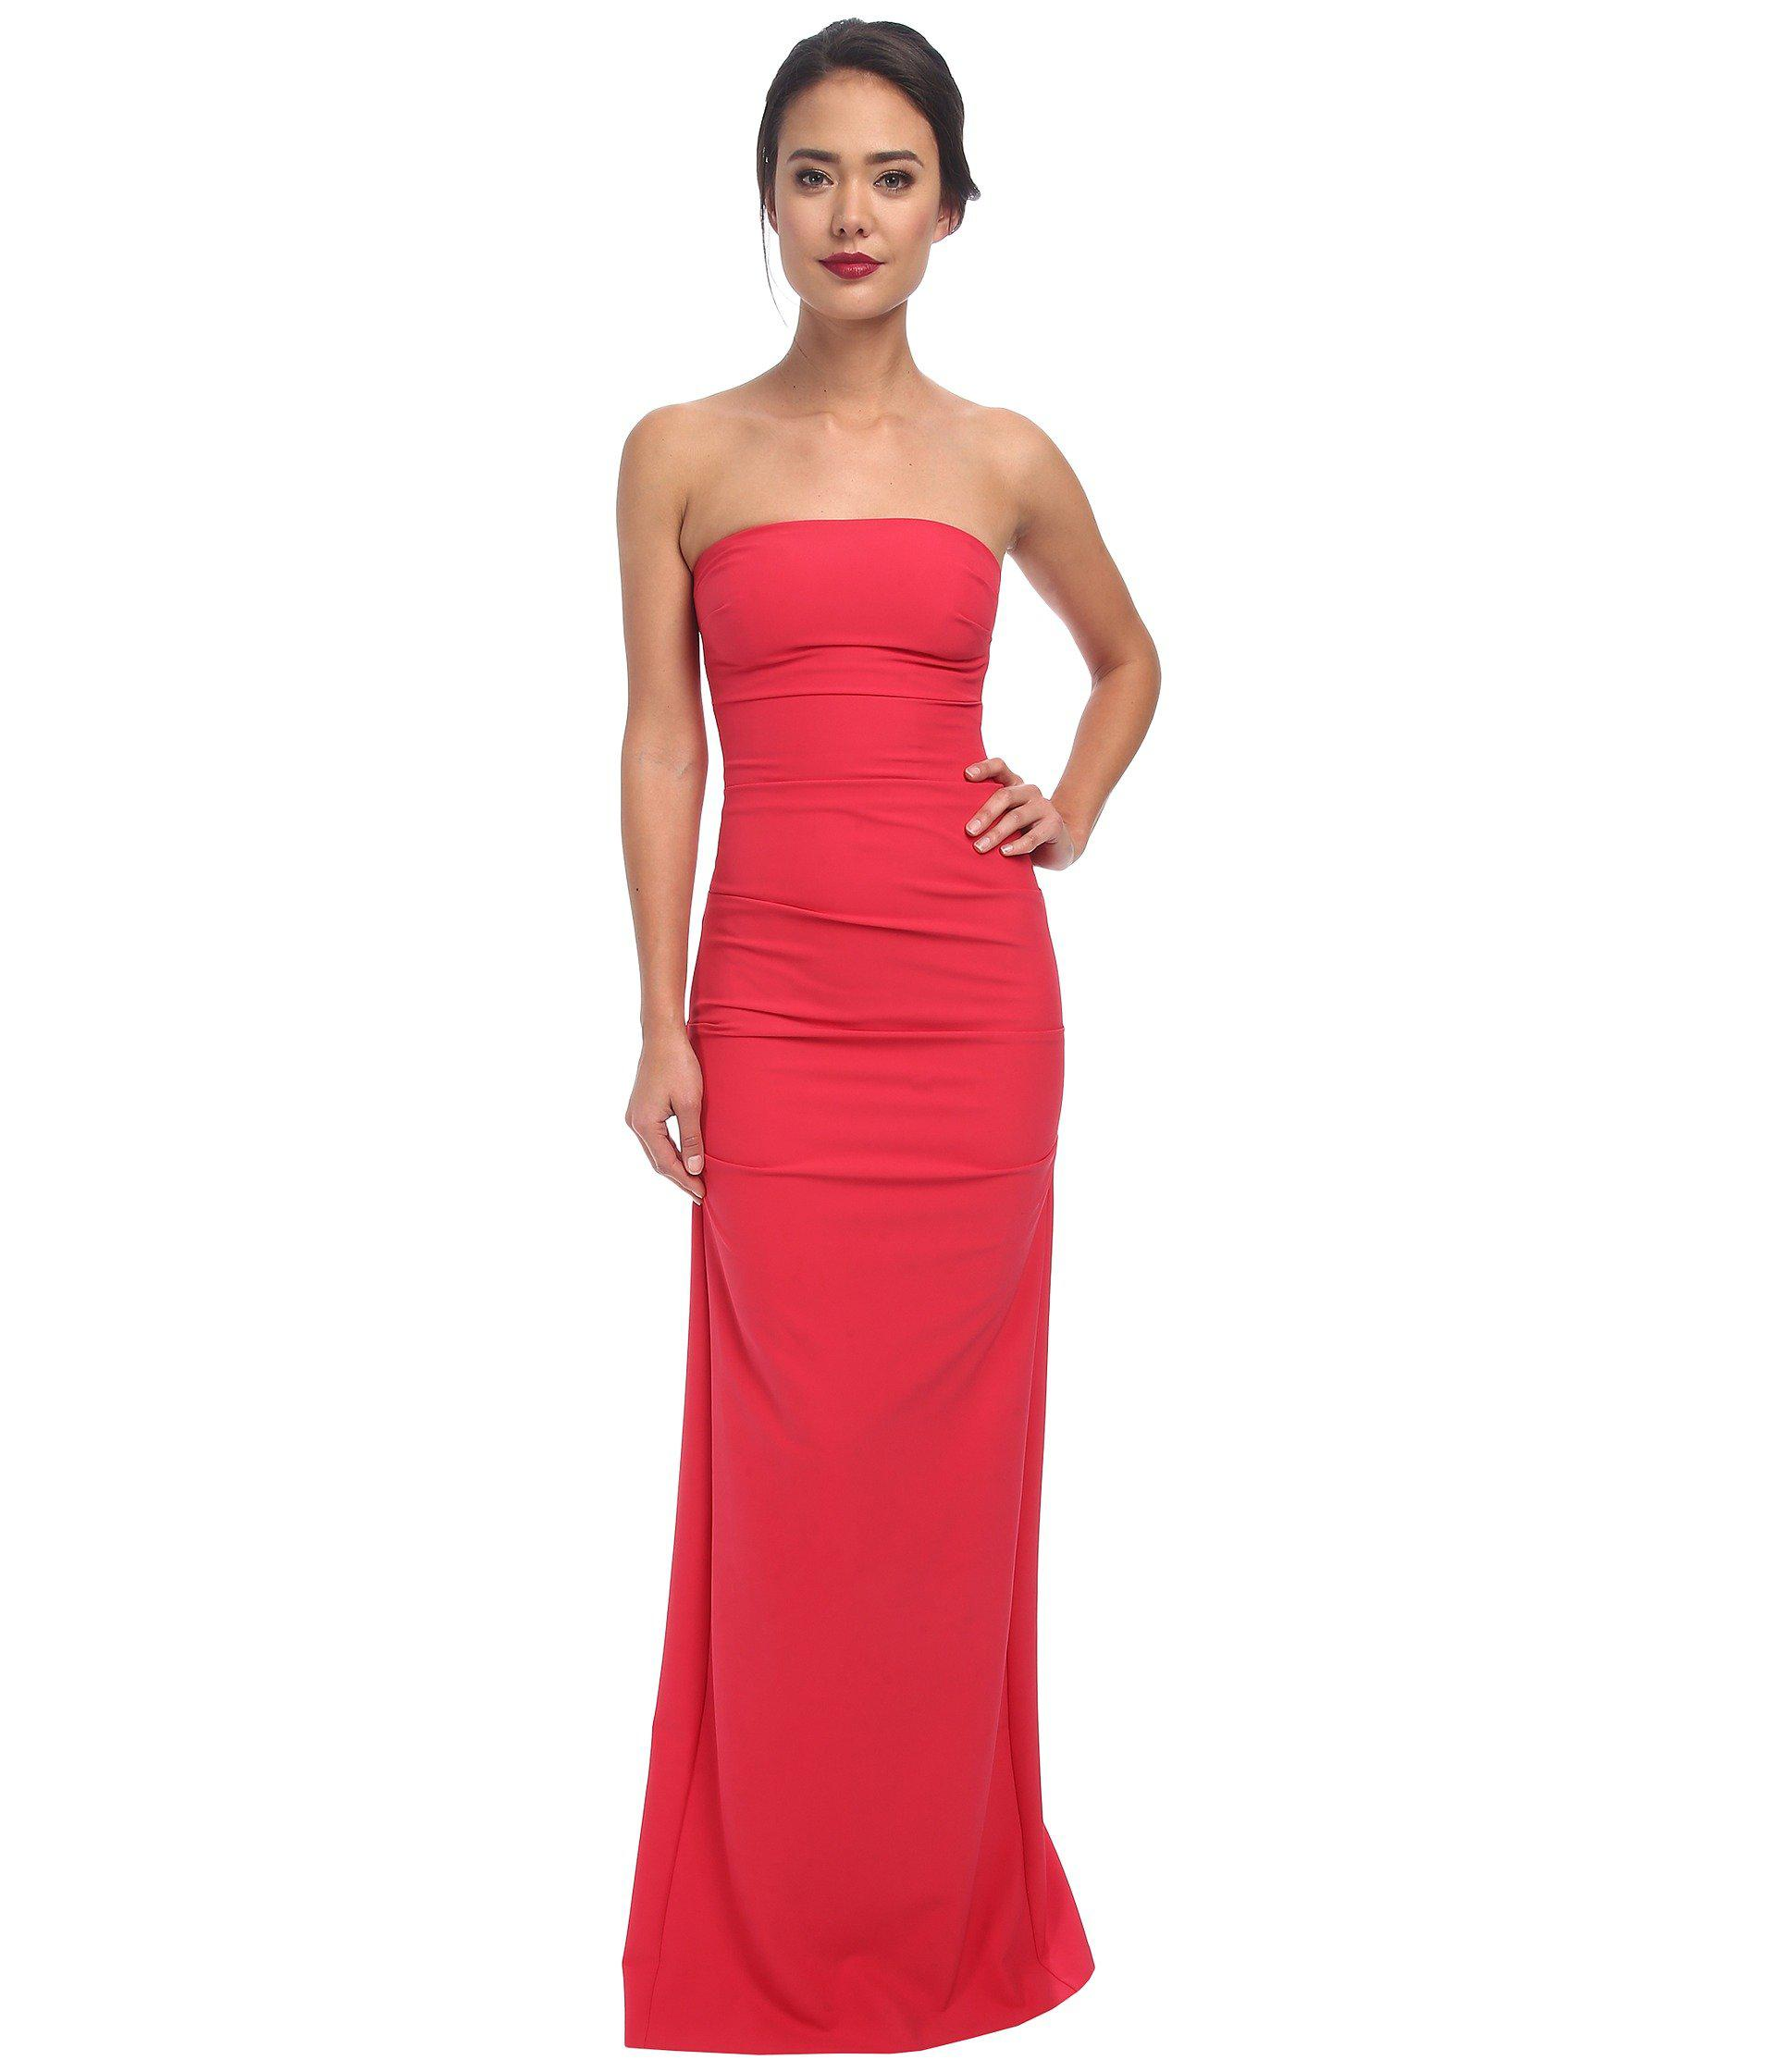 Lyst - Nicole Miller Felicity Techy Crepe Strapless Gown in Red ...